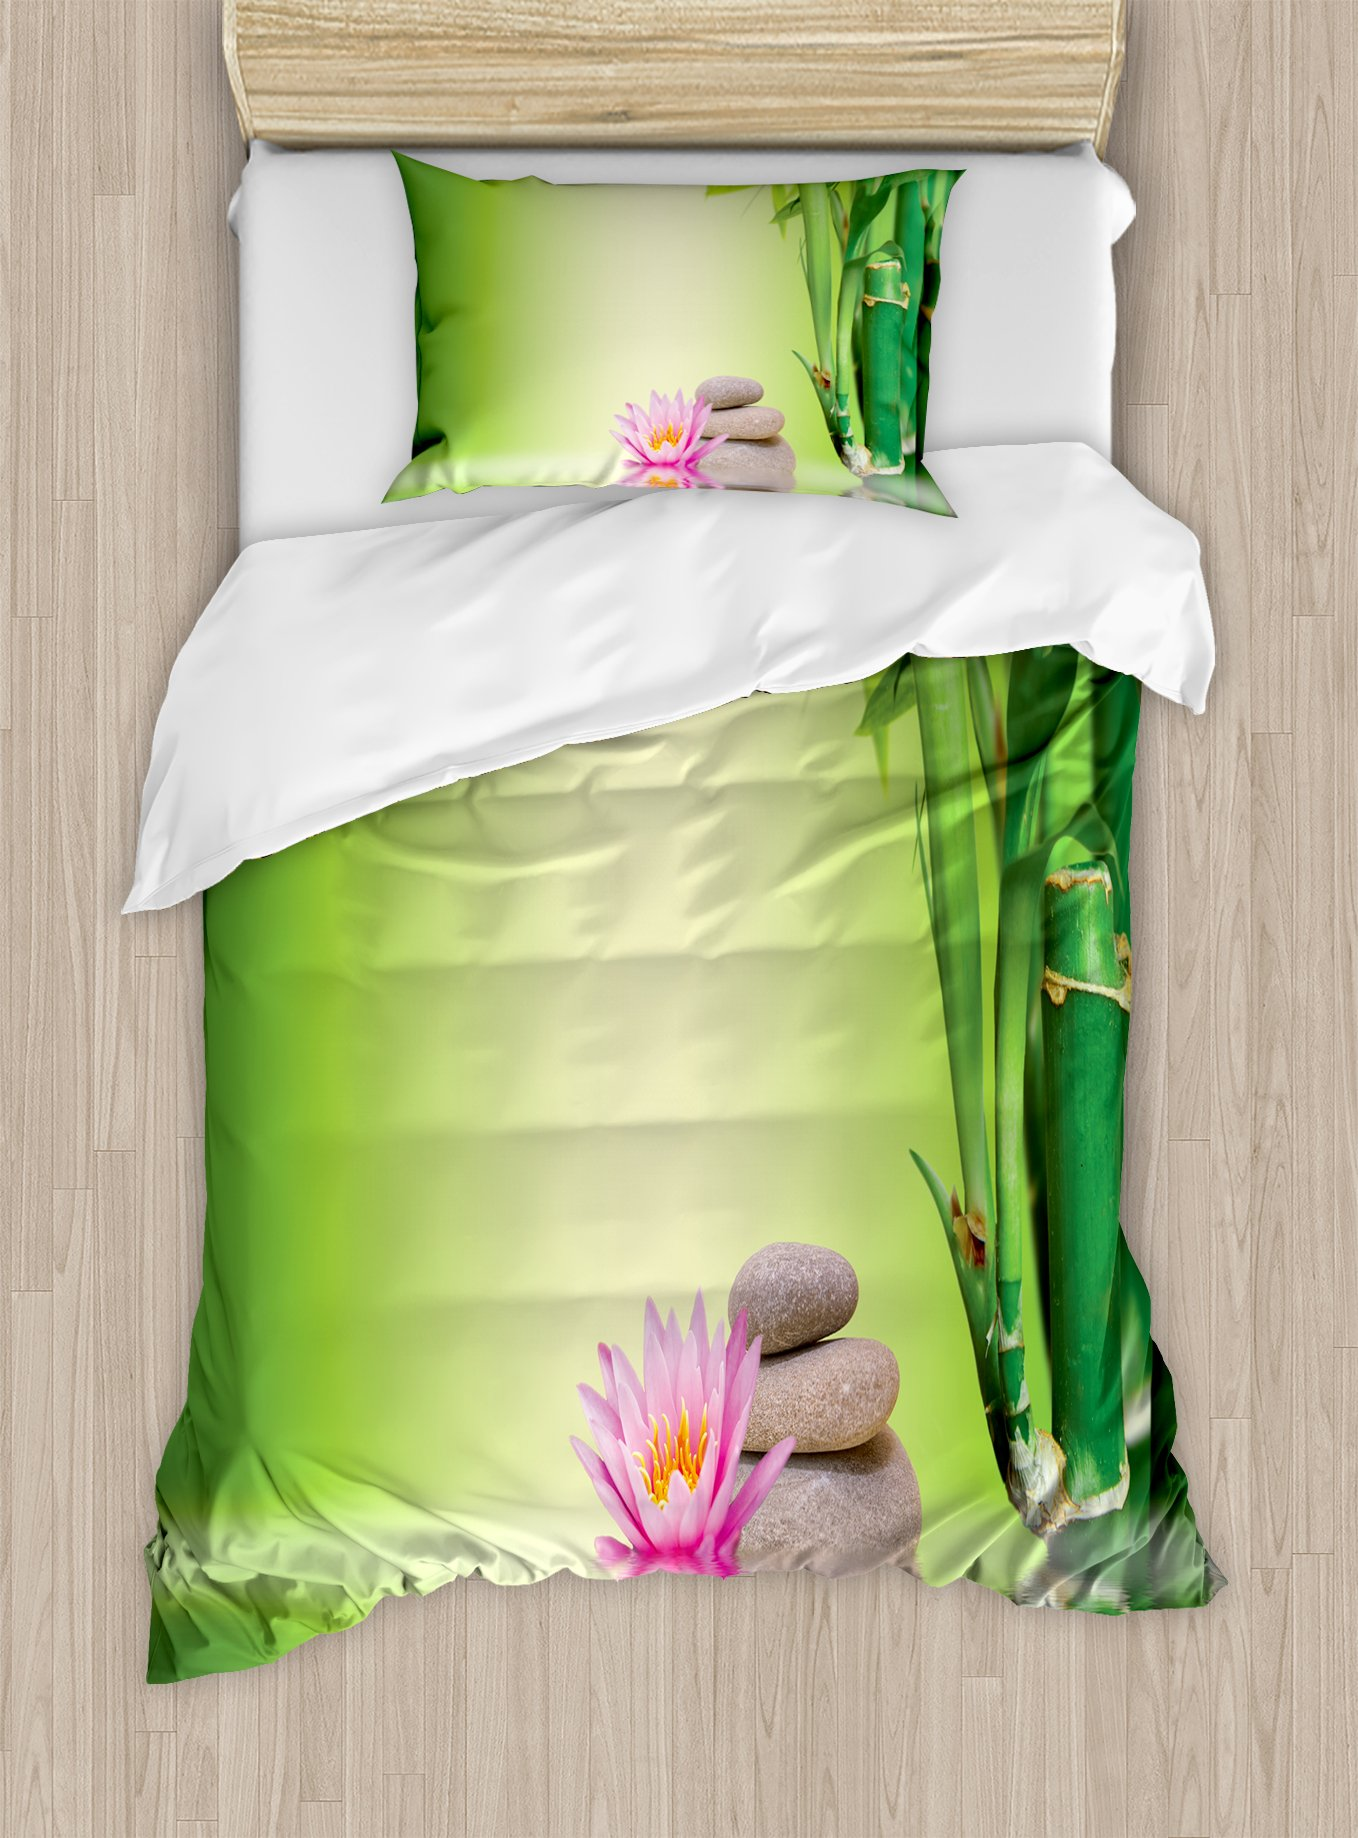 Ambesonne Spa Duvet Cover Set Twin Size, Zen Garden Asian Self-Control Freshening Insight in Daily Life Mindful Activity Print, Decorative 2 Piece Bedding Set with 1 Pillow Sham, Green Pink